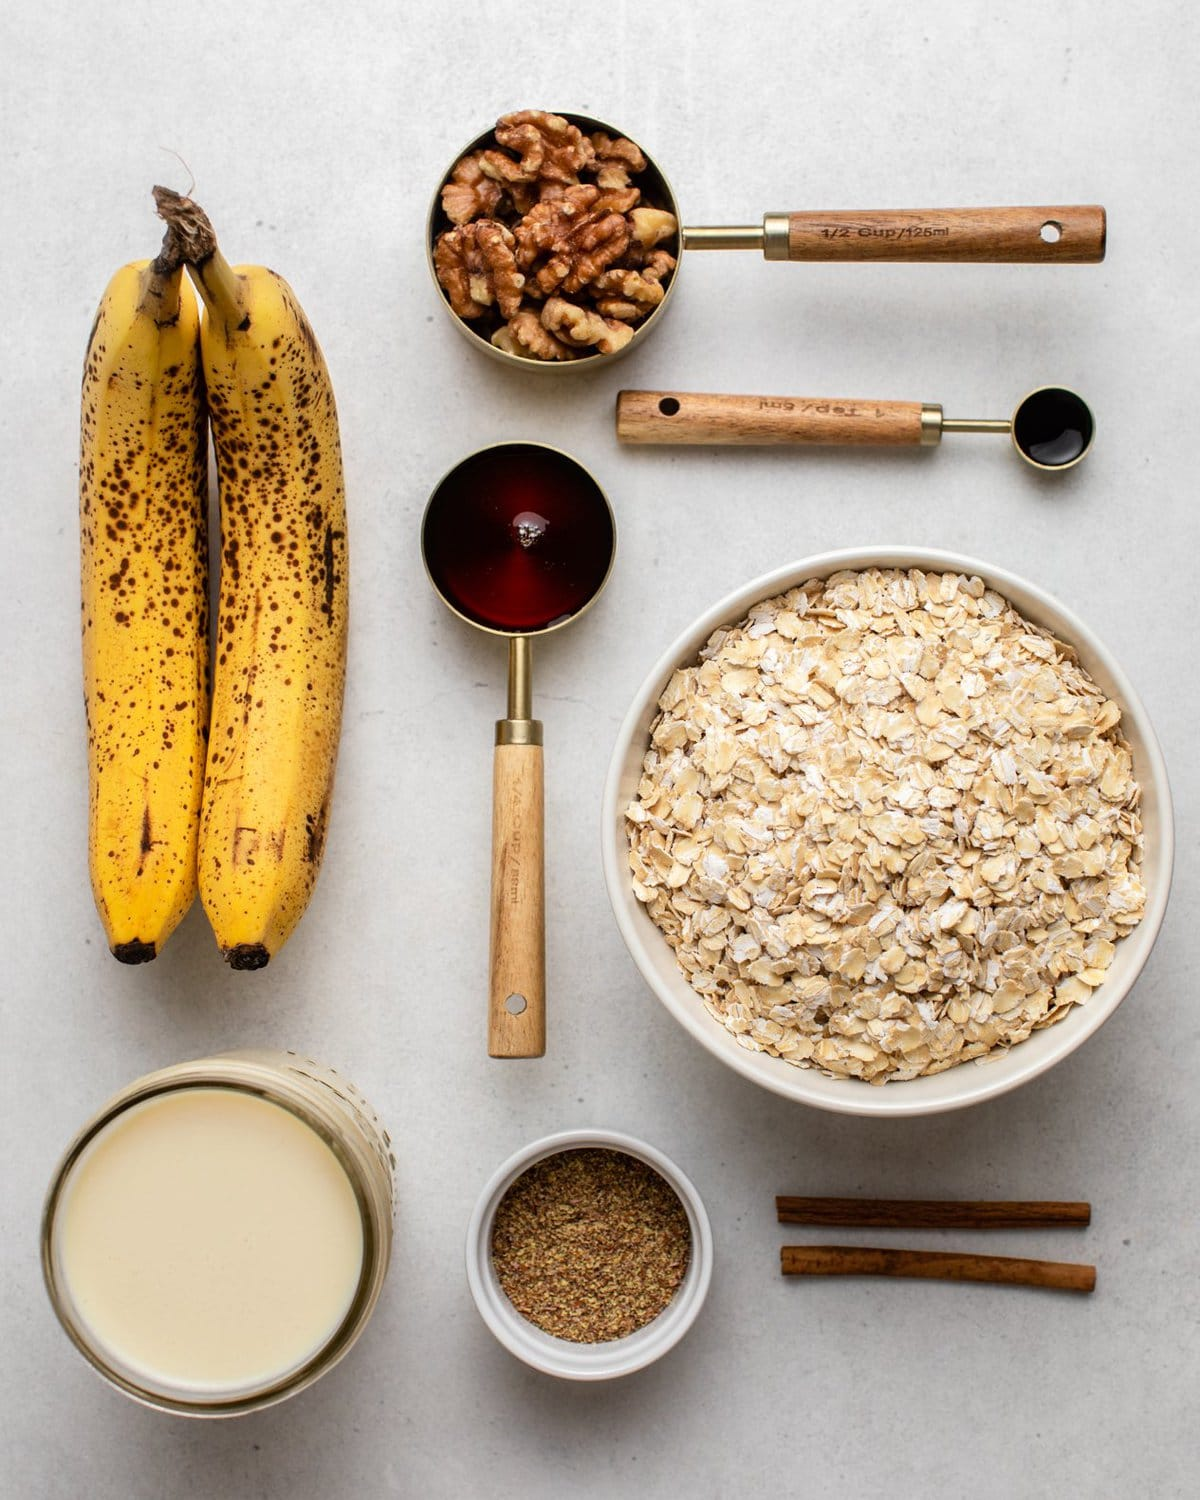 ingredients for banana bread baked oatmeal in measuring cups on white background